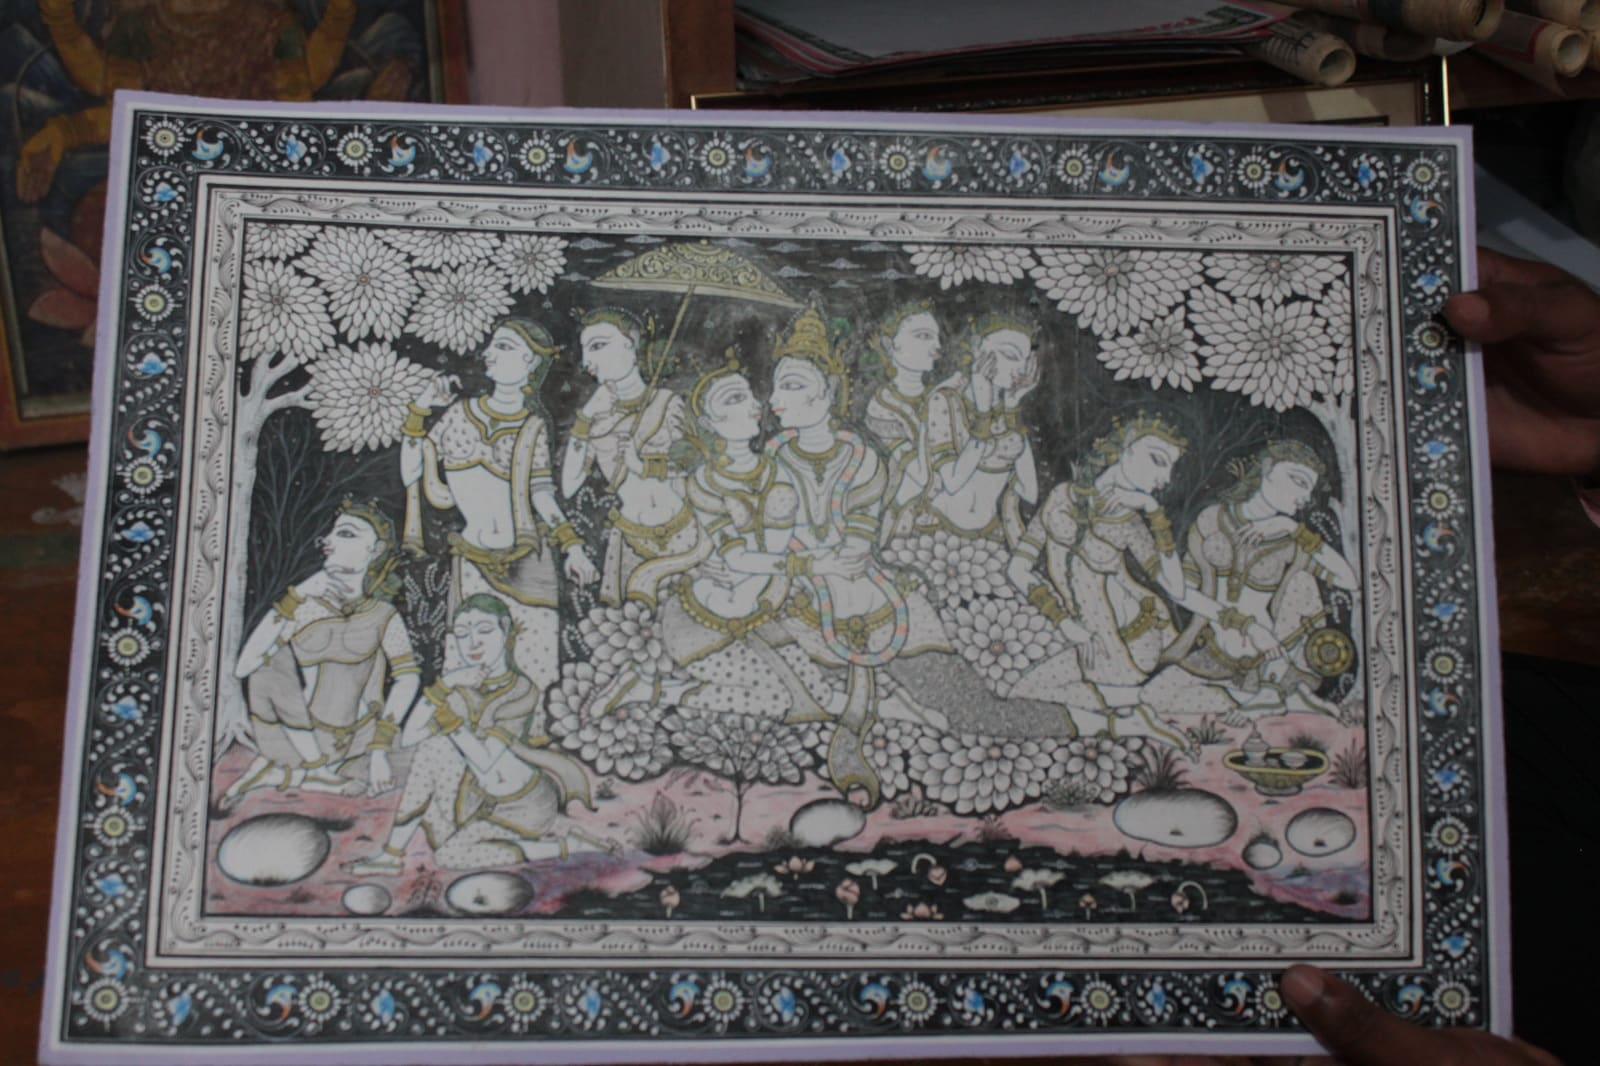 A scene of 'Raas-Leela' painted on canvas. Patachitra, an art form, are paintings on dried palm leaves or on canvas. Artists from a tiny village in the Puri district, Raghurajpur, mostly paint scenes from mythology related to Lord Krishna.